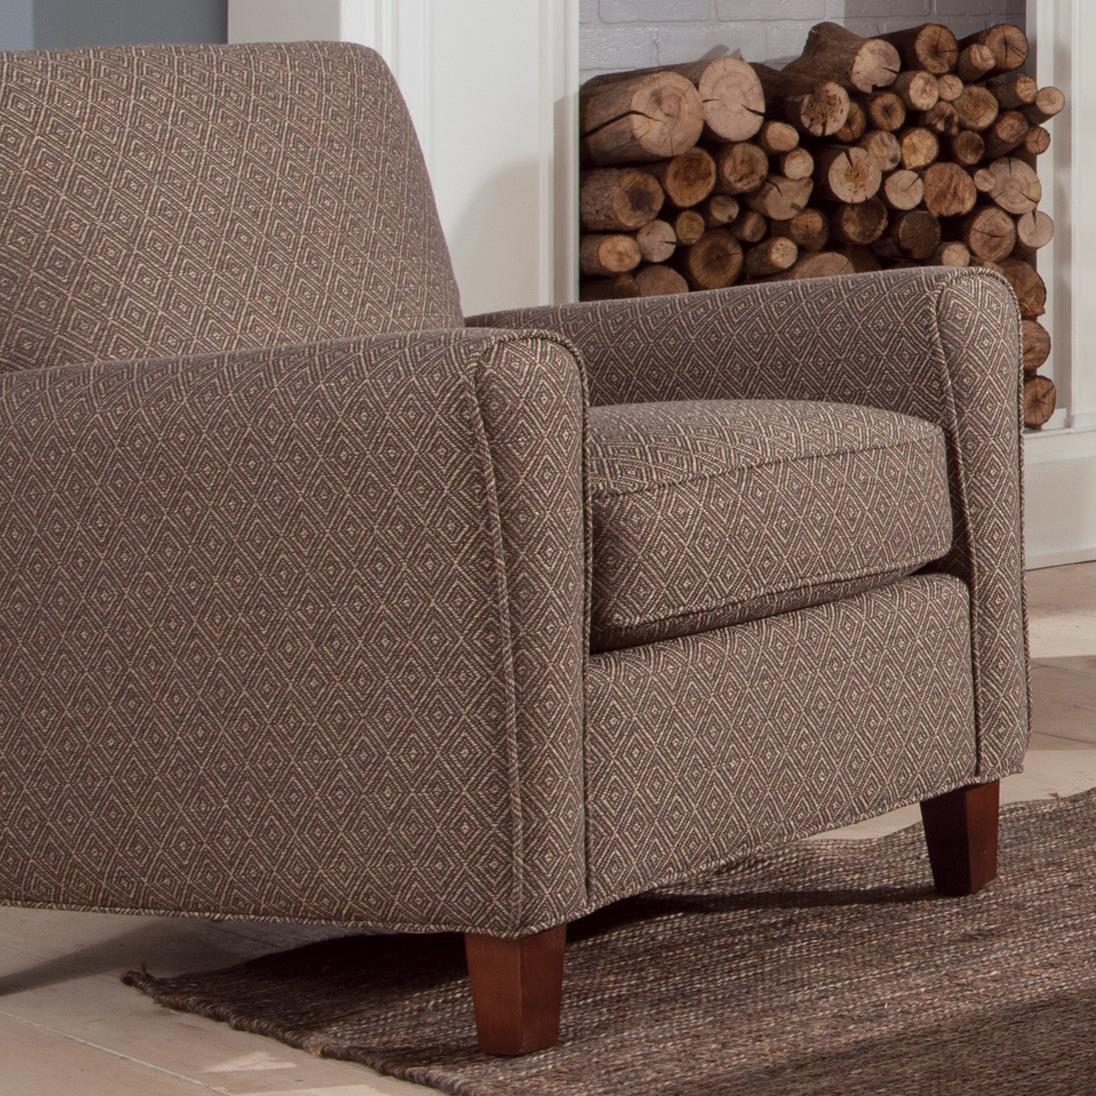 Craftmaster Accent Chairs Contemporary Accent Chair with ...